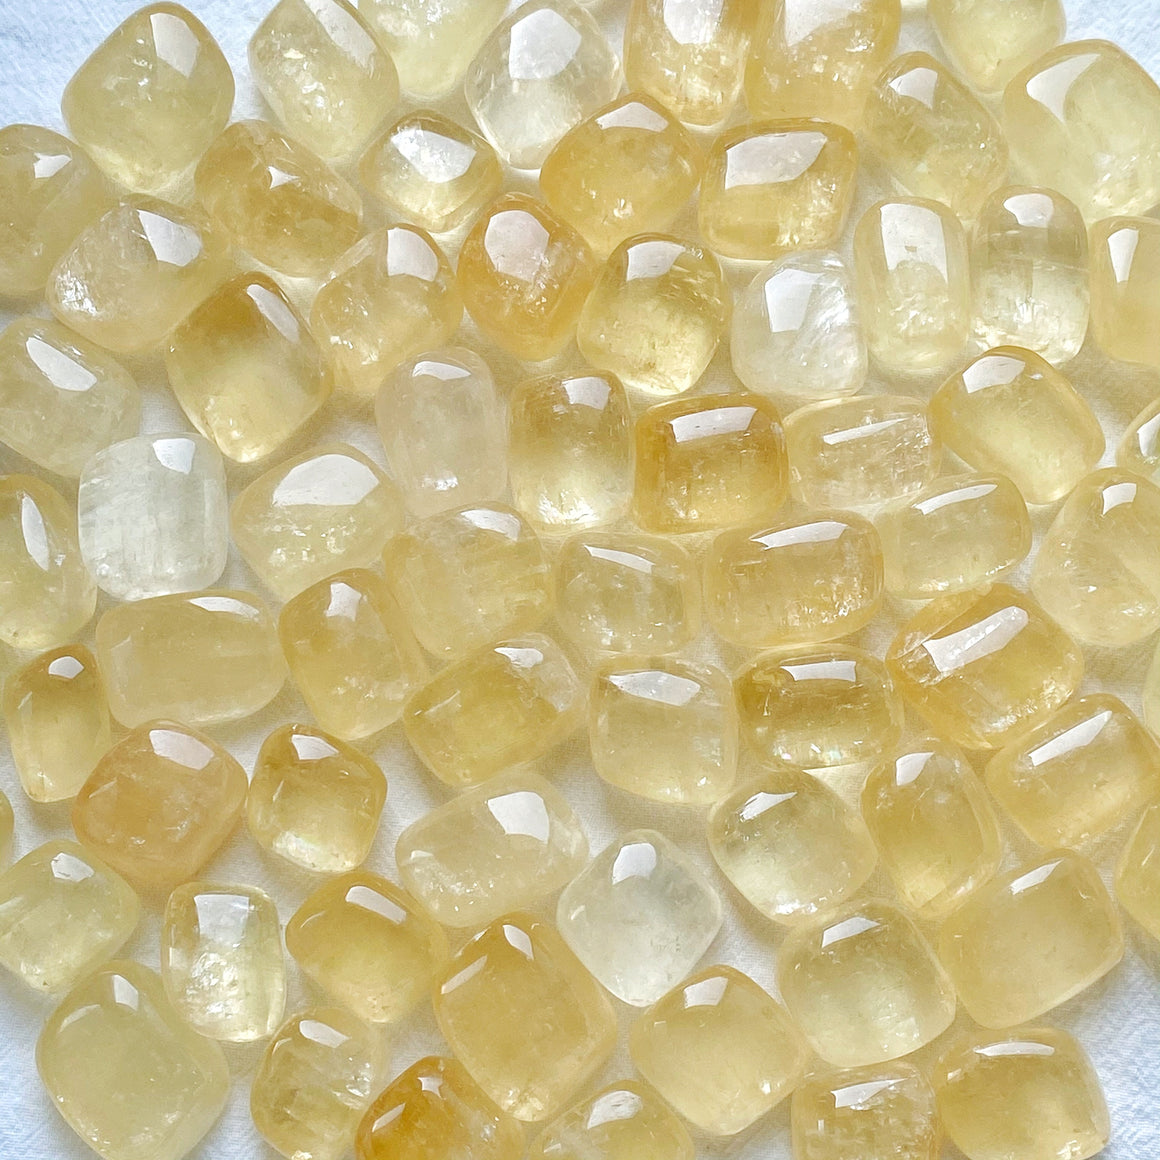 Yellow Calcite Tumbled Stones